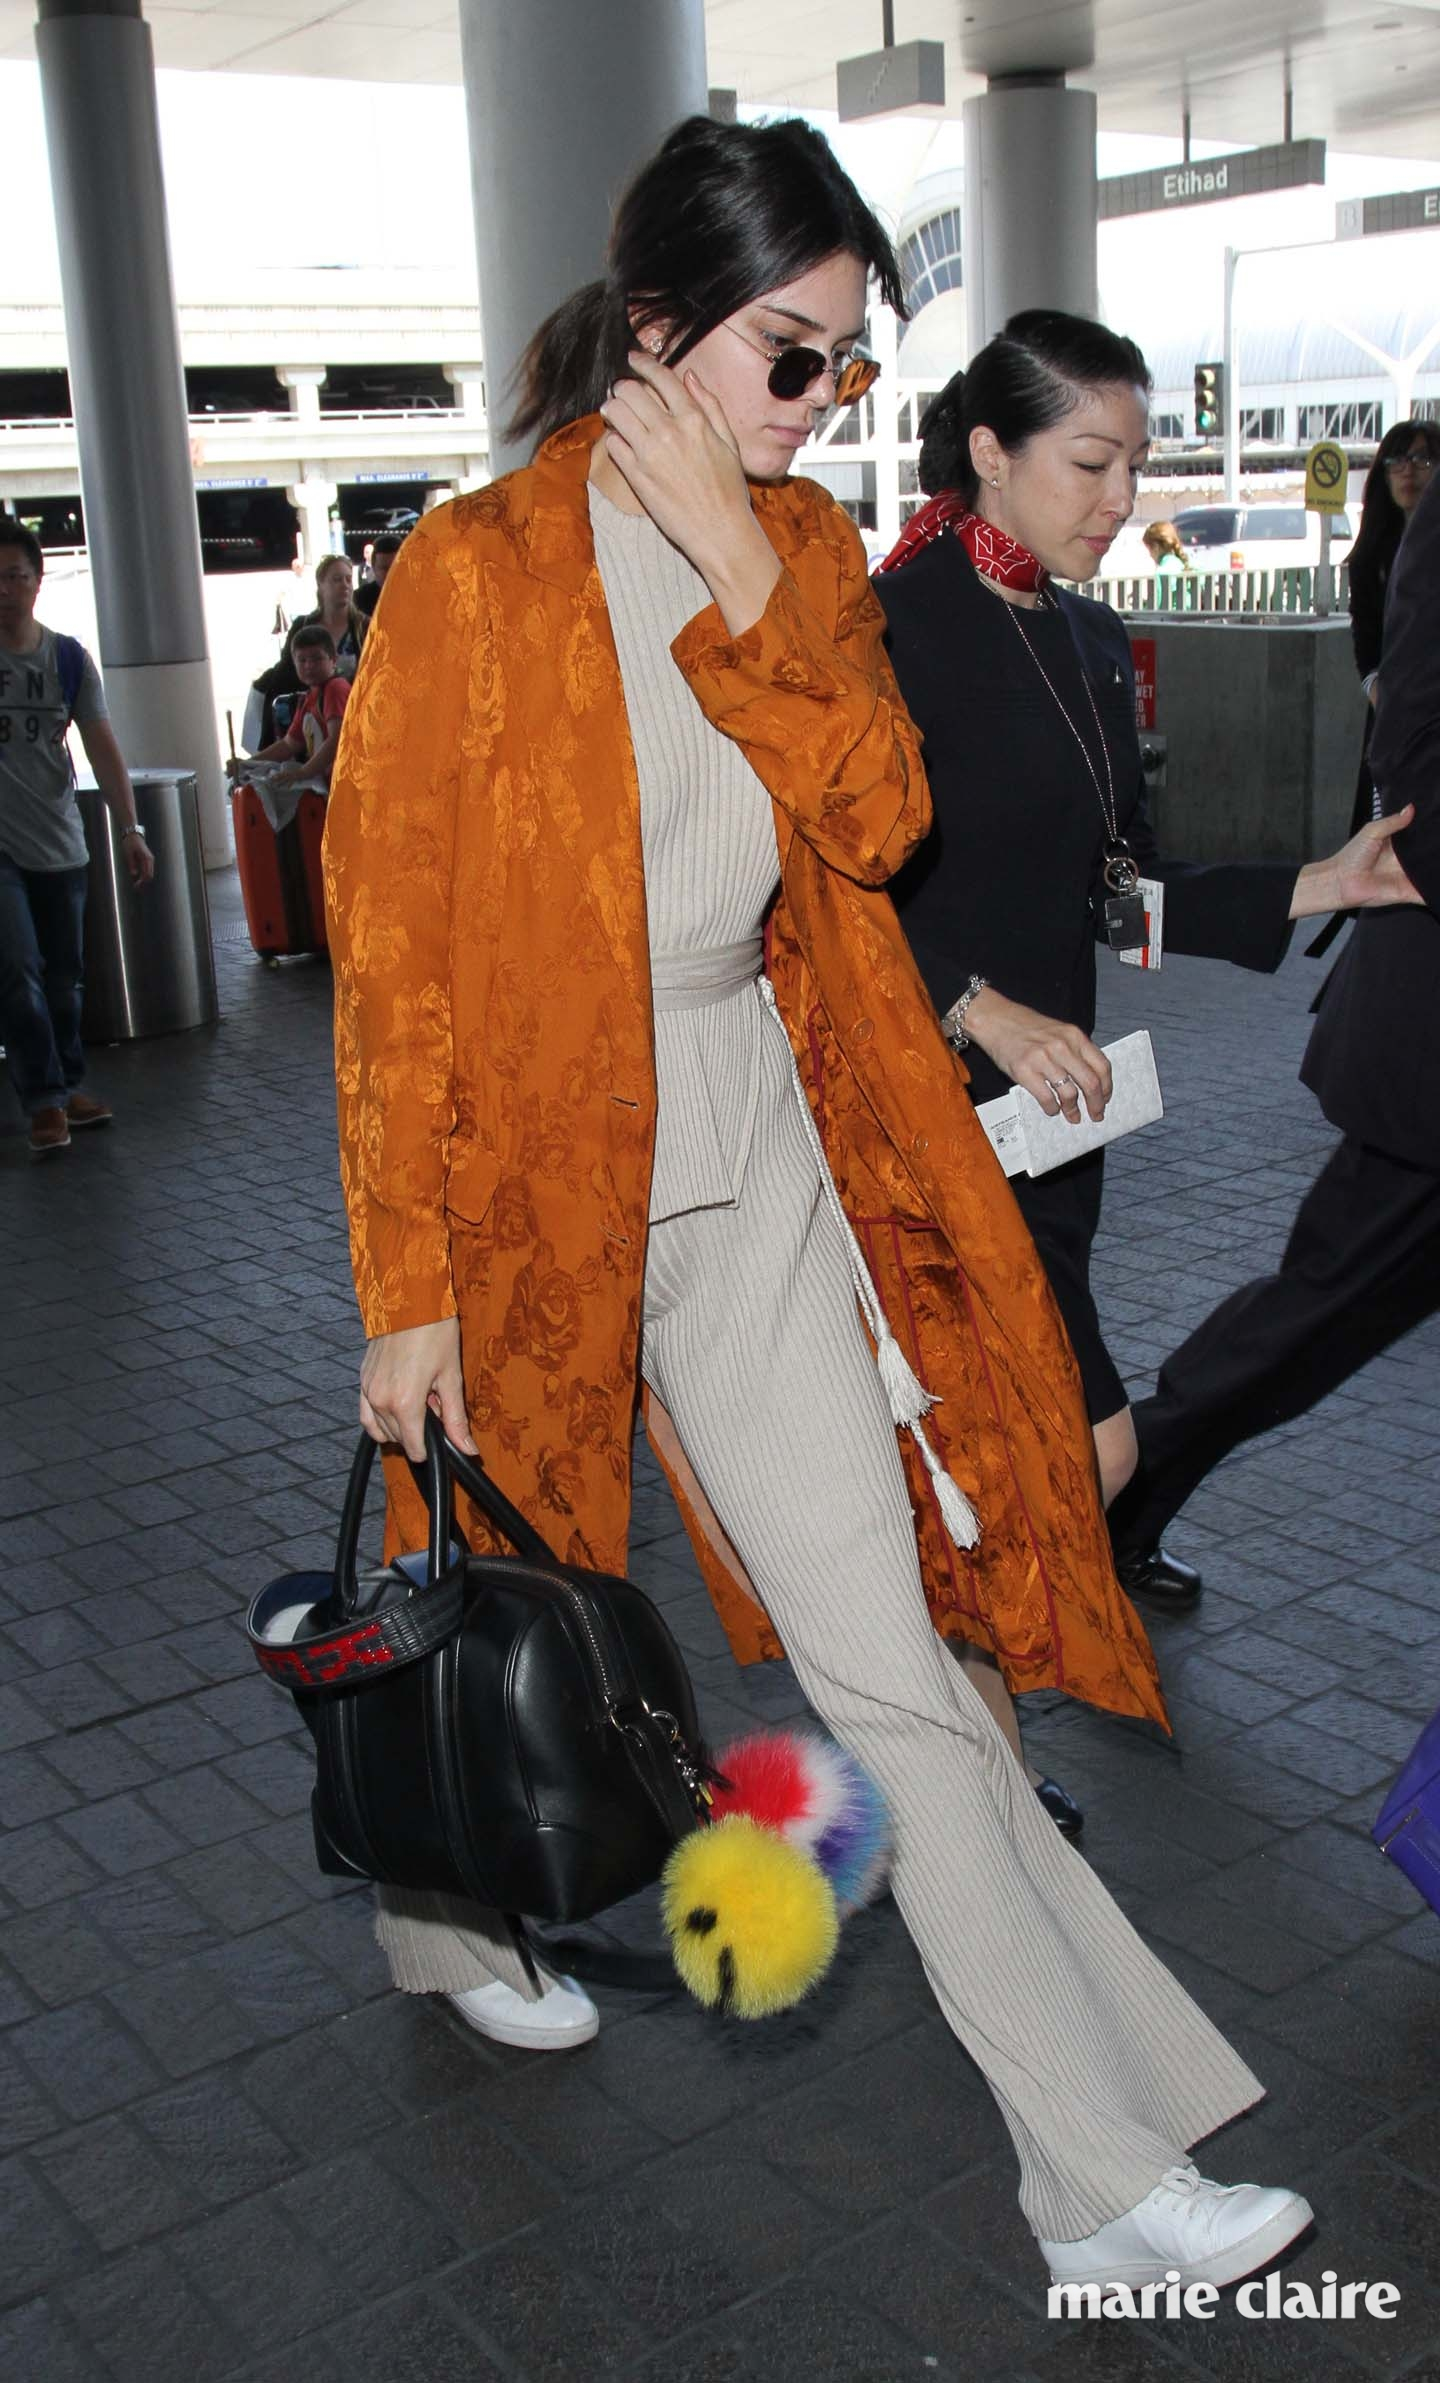 Kendall Jenner makes a striking appearance in an orange coat while catching her flight out of Los Angeles International Airport Featuring: Kendall Jenner Where: Los Angeles, California, United States When: 10 May 2016 Credit: WENN.com